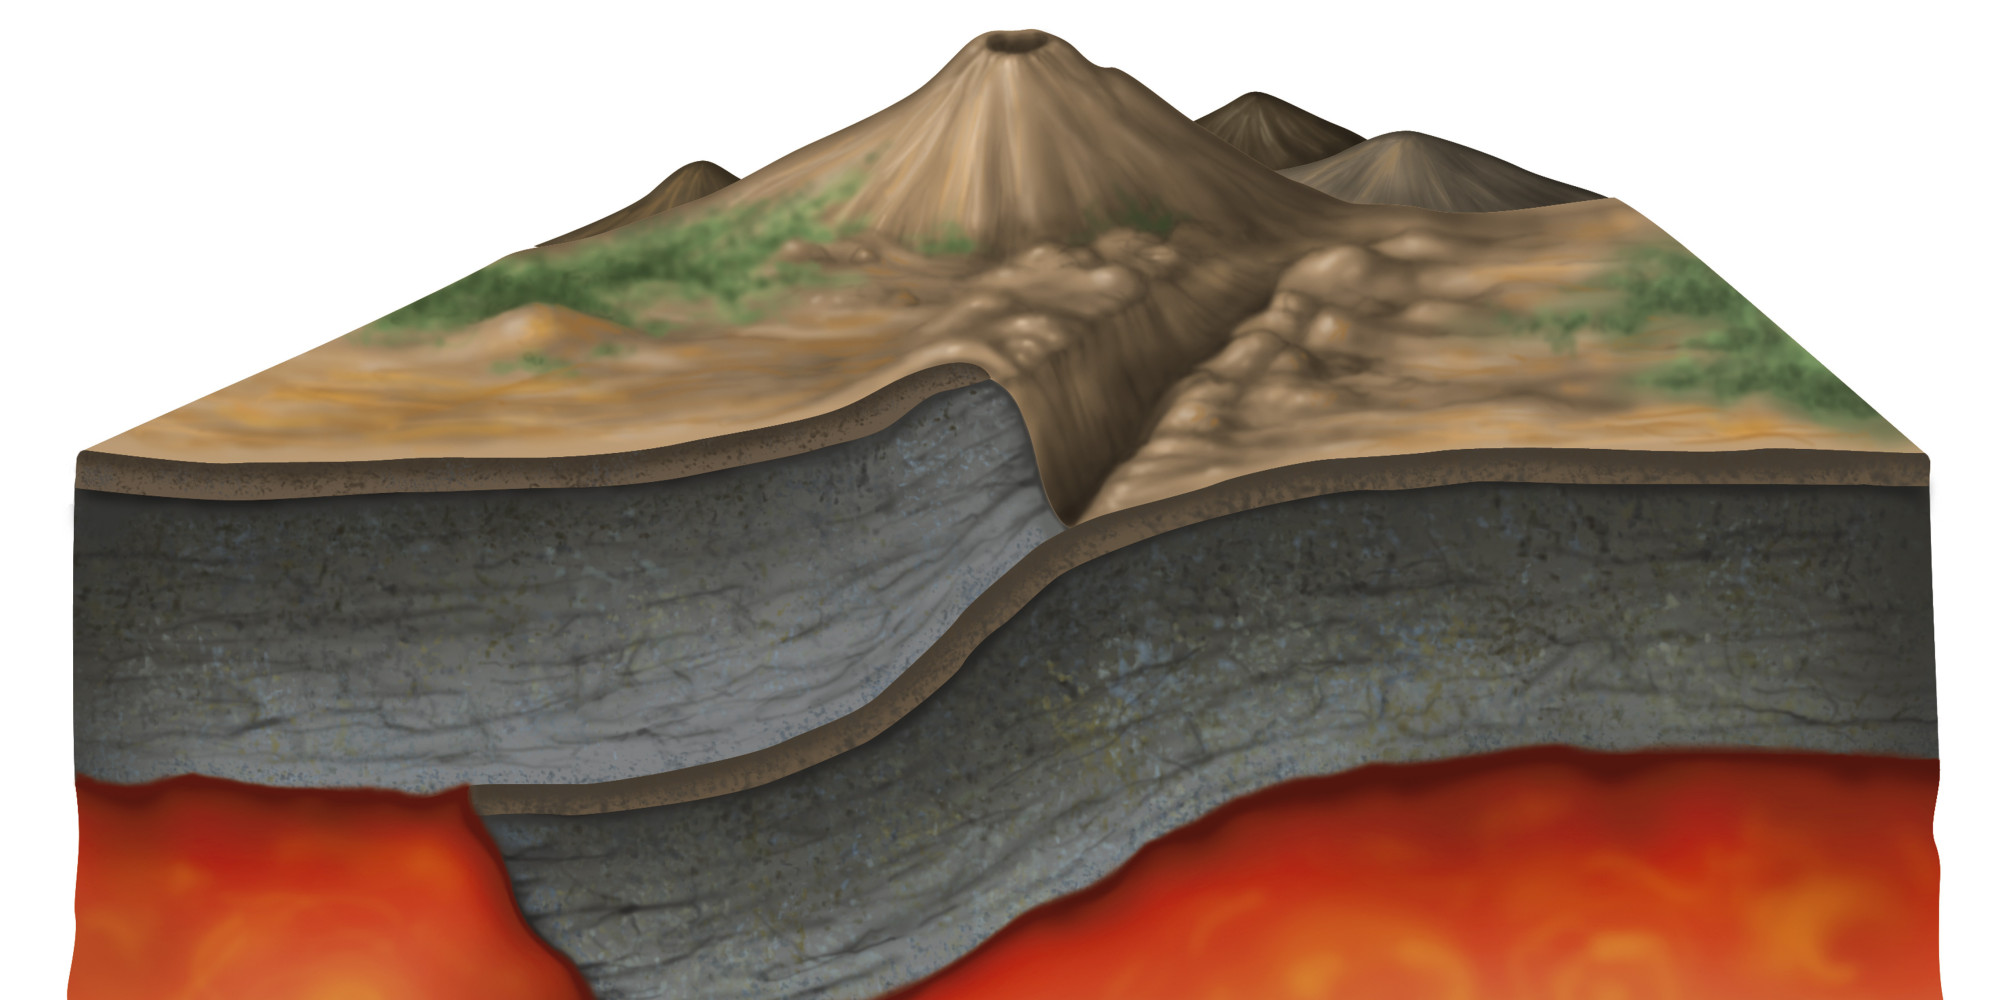 New Plate Tectonics Model May Explain How Continents Grow